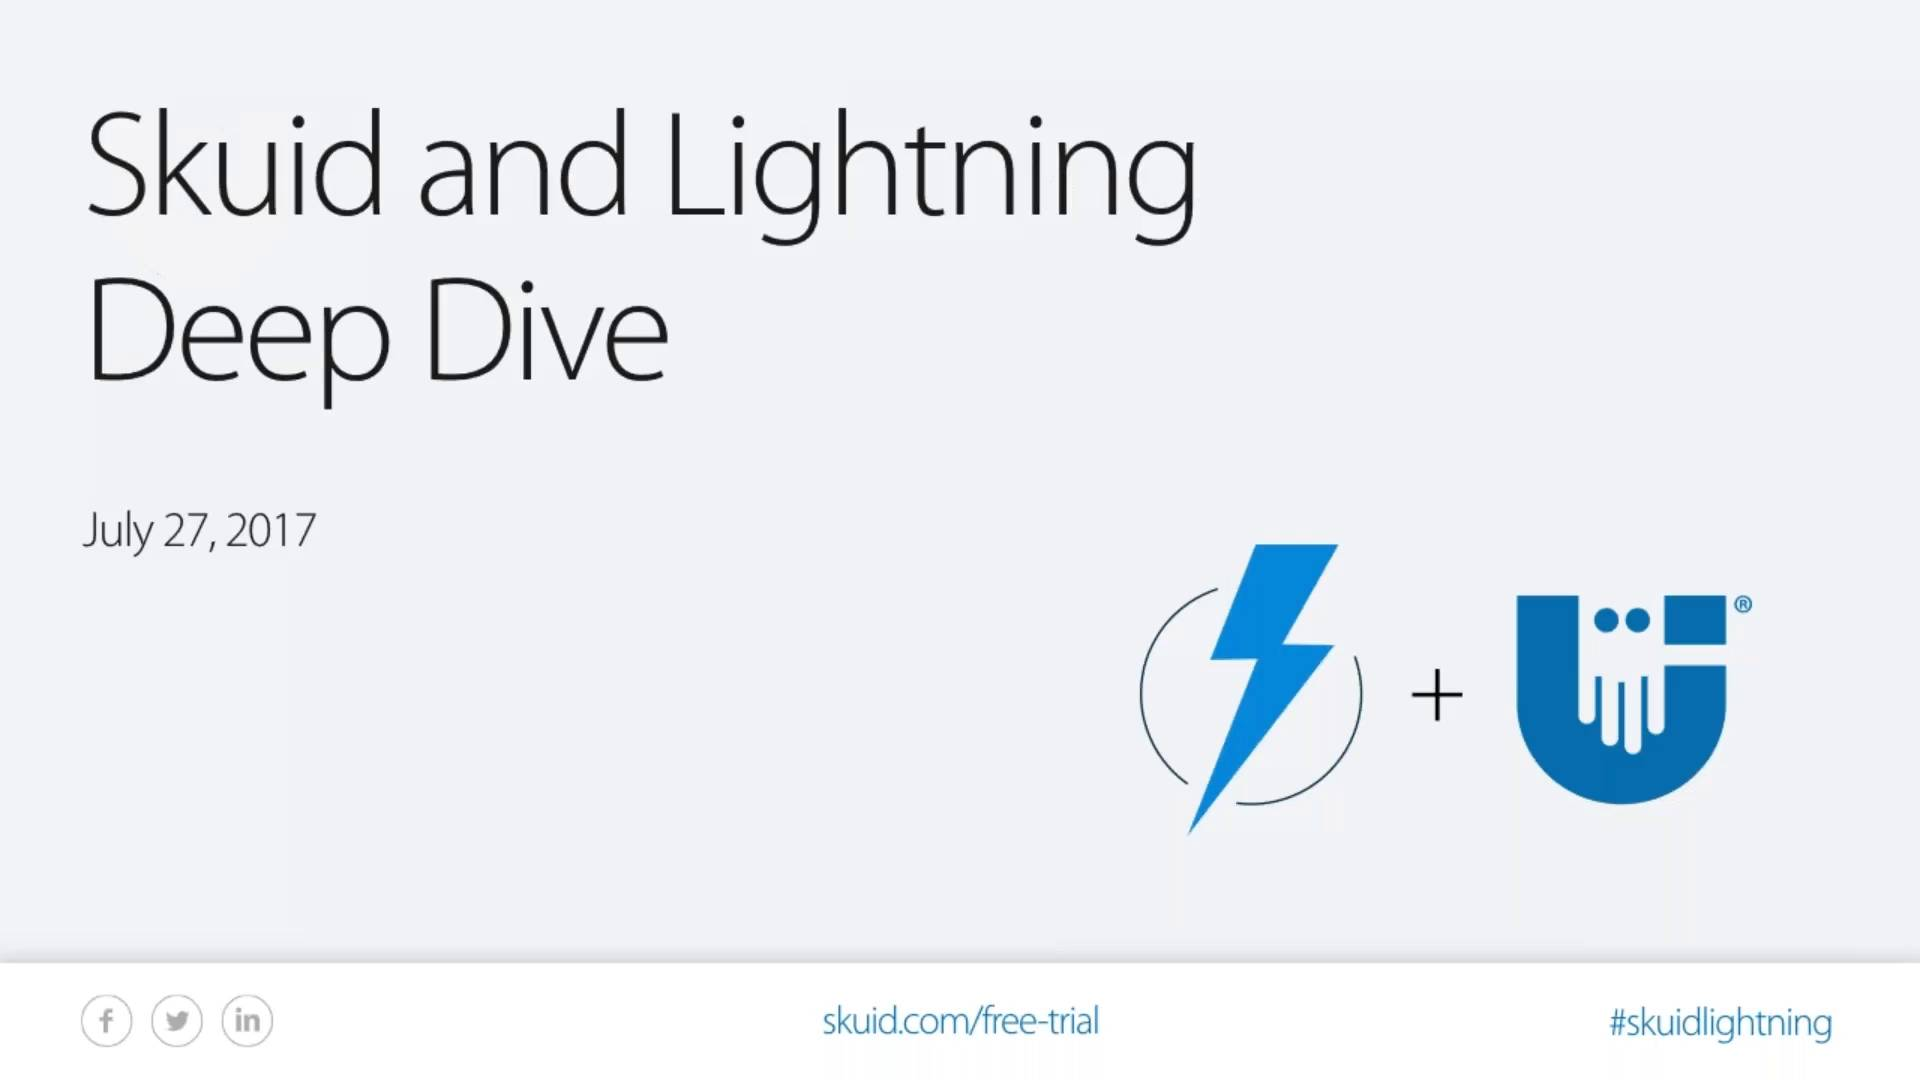 Skuid and Lightning Deep Dive